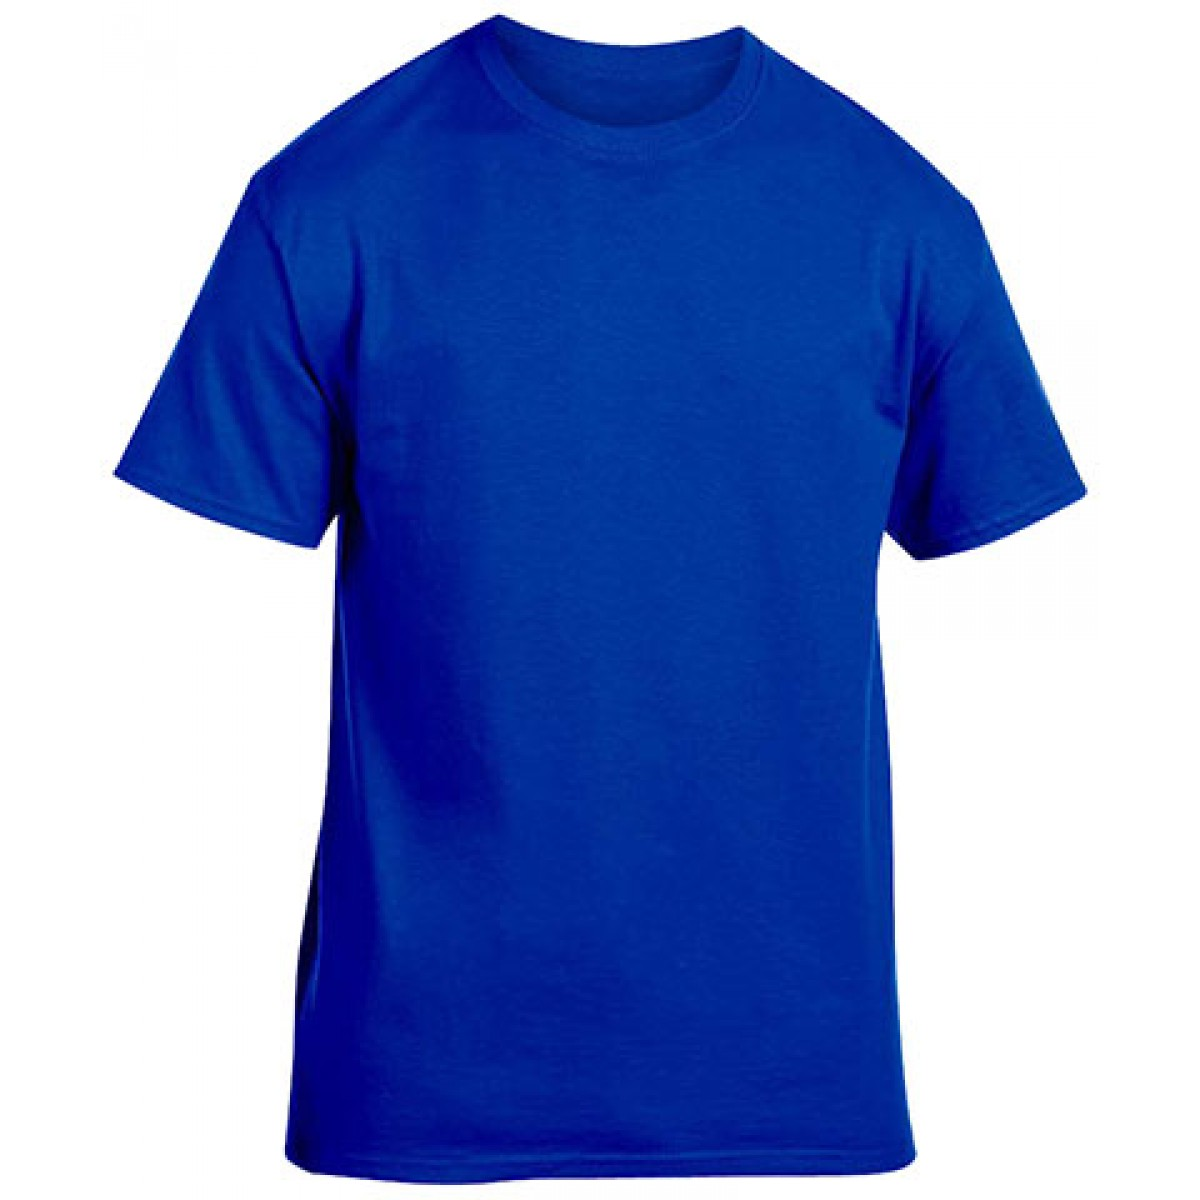 Heavy Cotton Activewear T-Shirt-Royal Blue-2XL